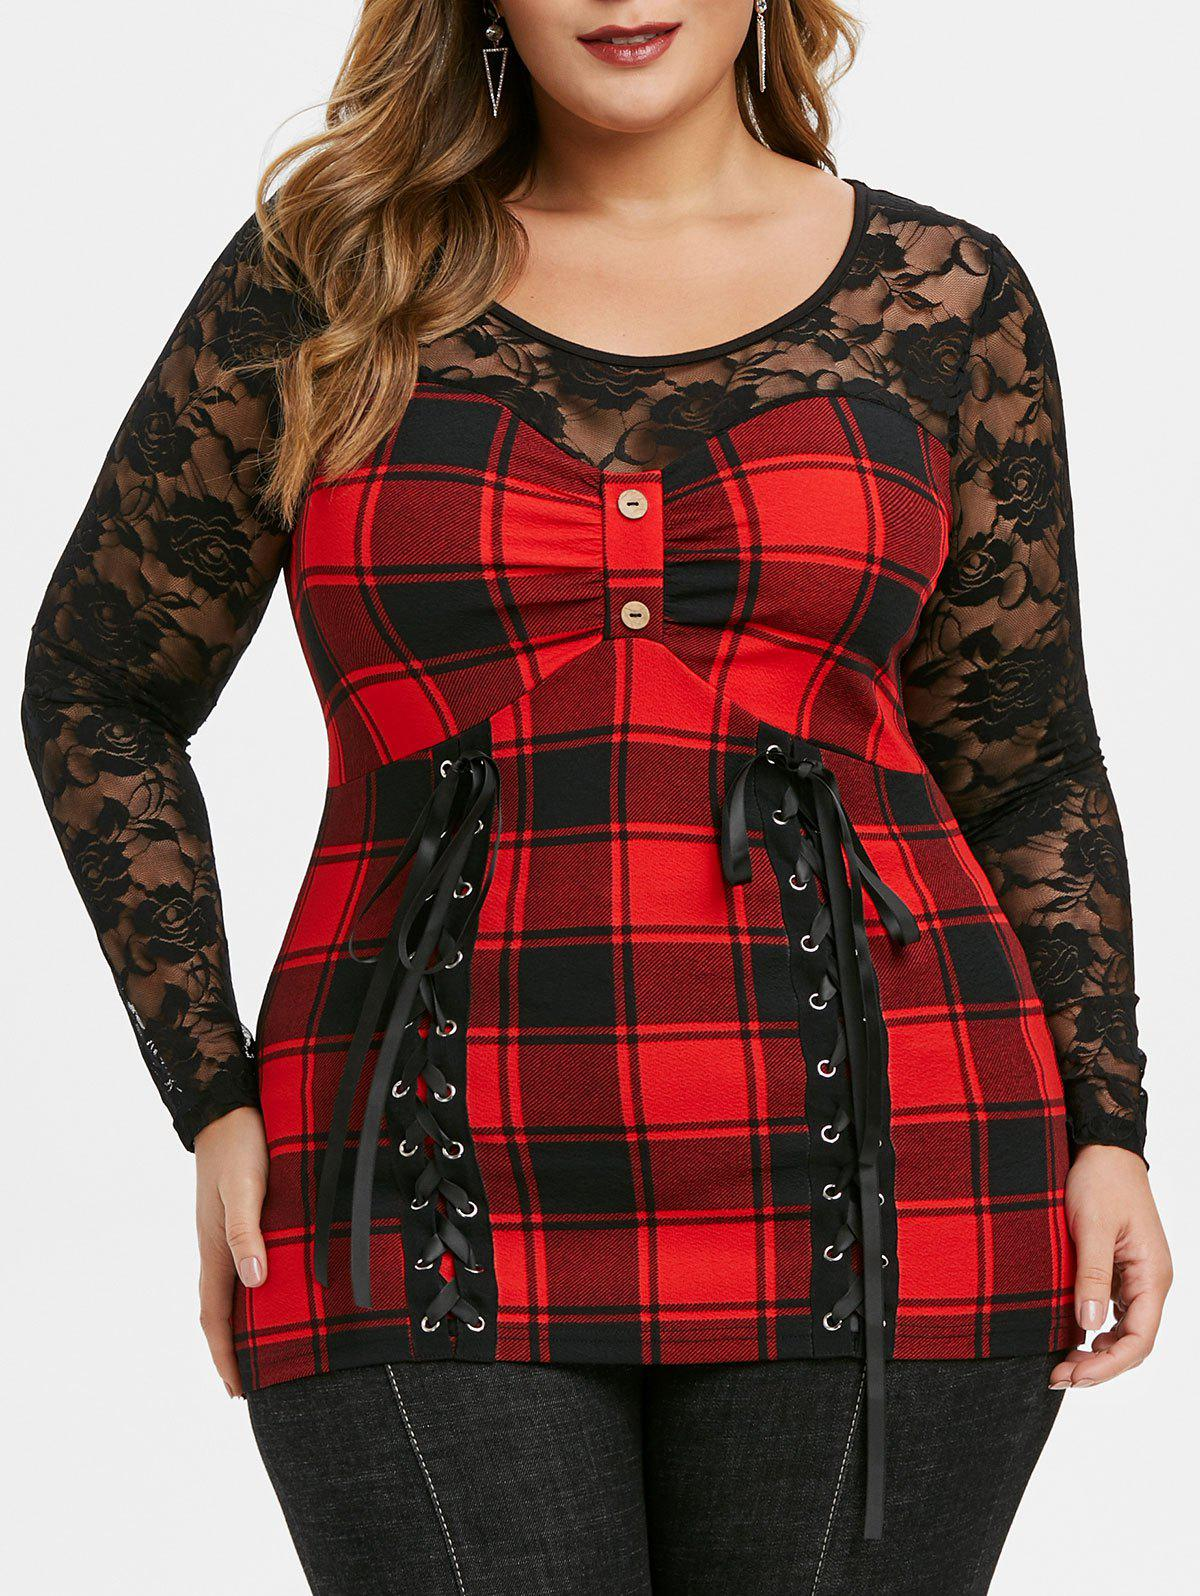 Plus Size See Thru Plaid Panel Lace Up T Shirt - LAVA RED 5X